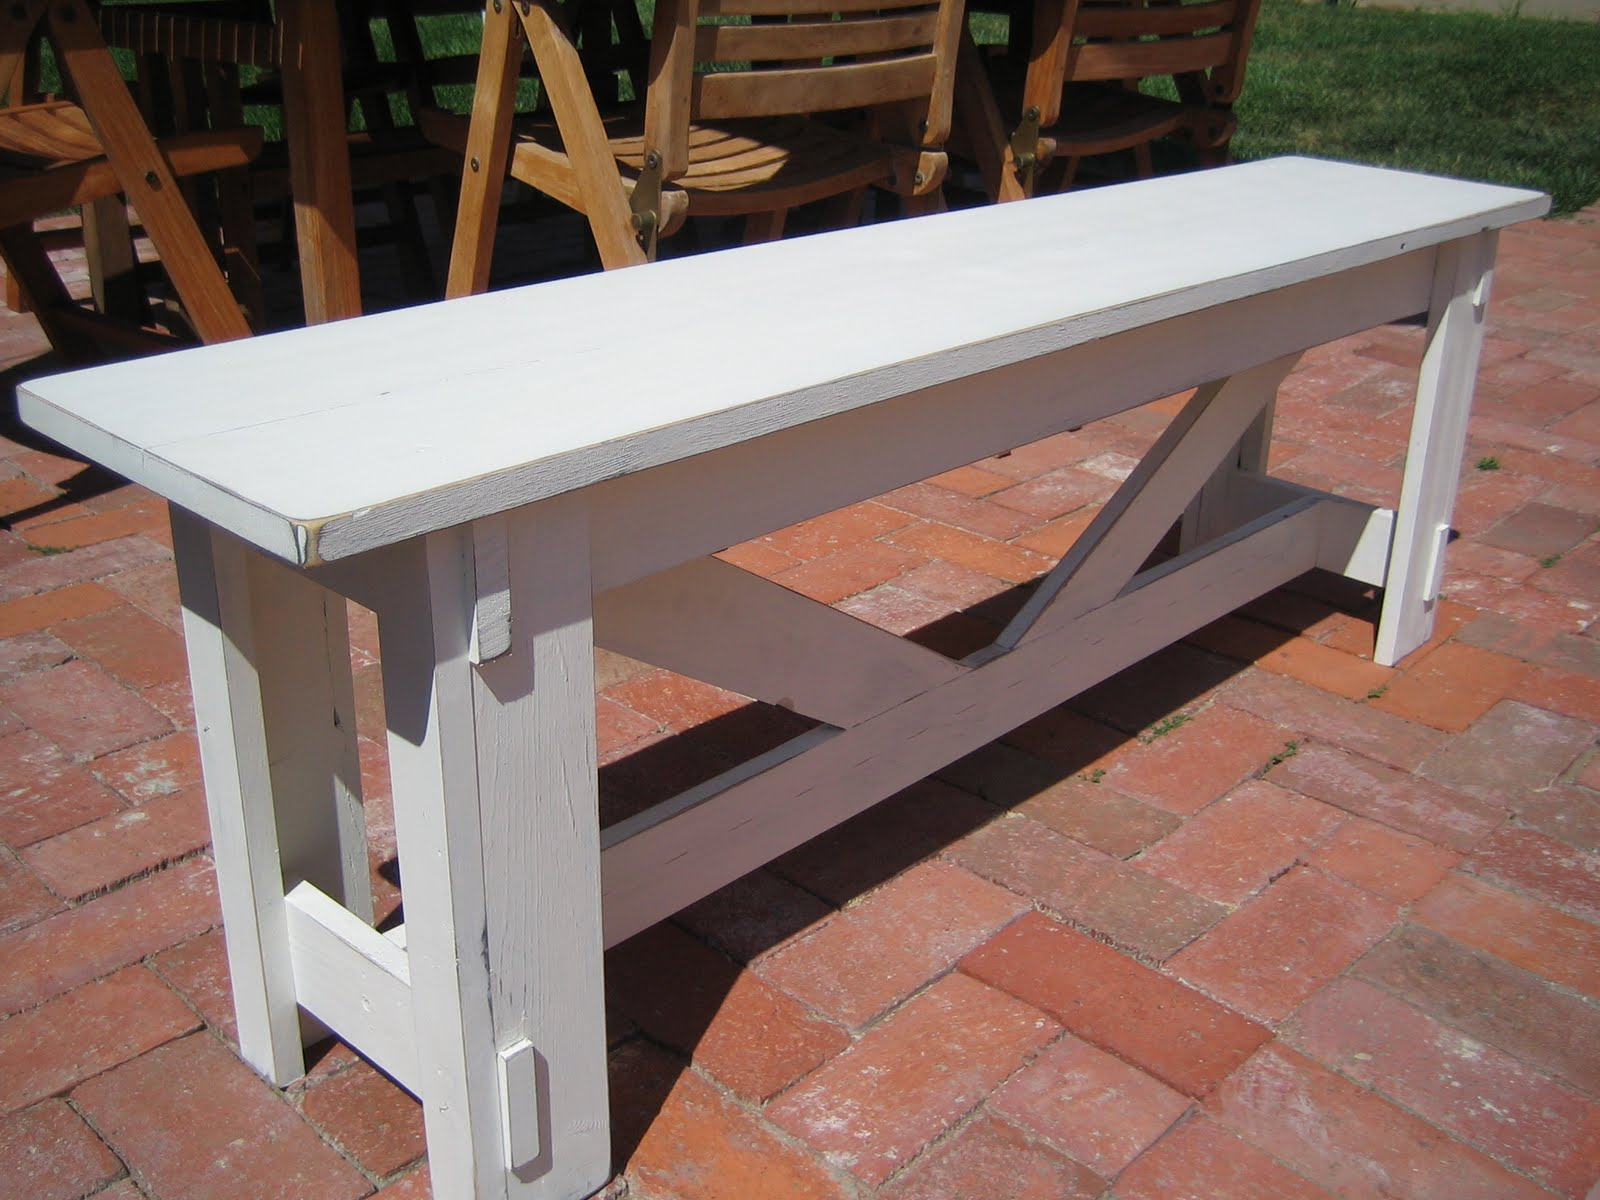 Farmhouse Table Company Shabby Chic Rustic Bench Farmhouse Table Company